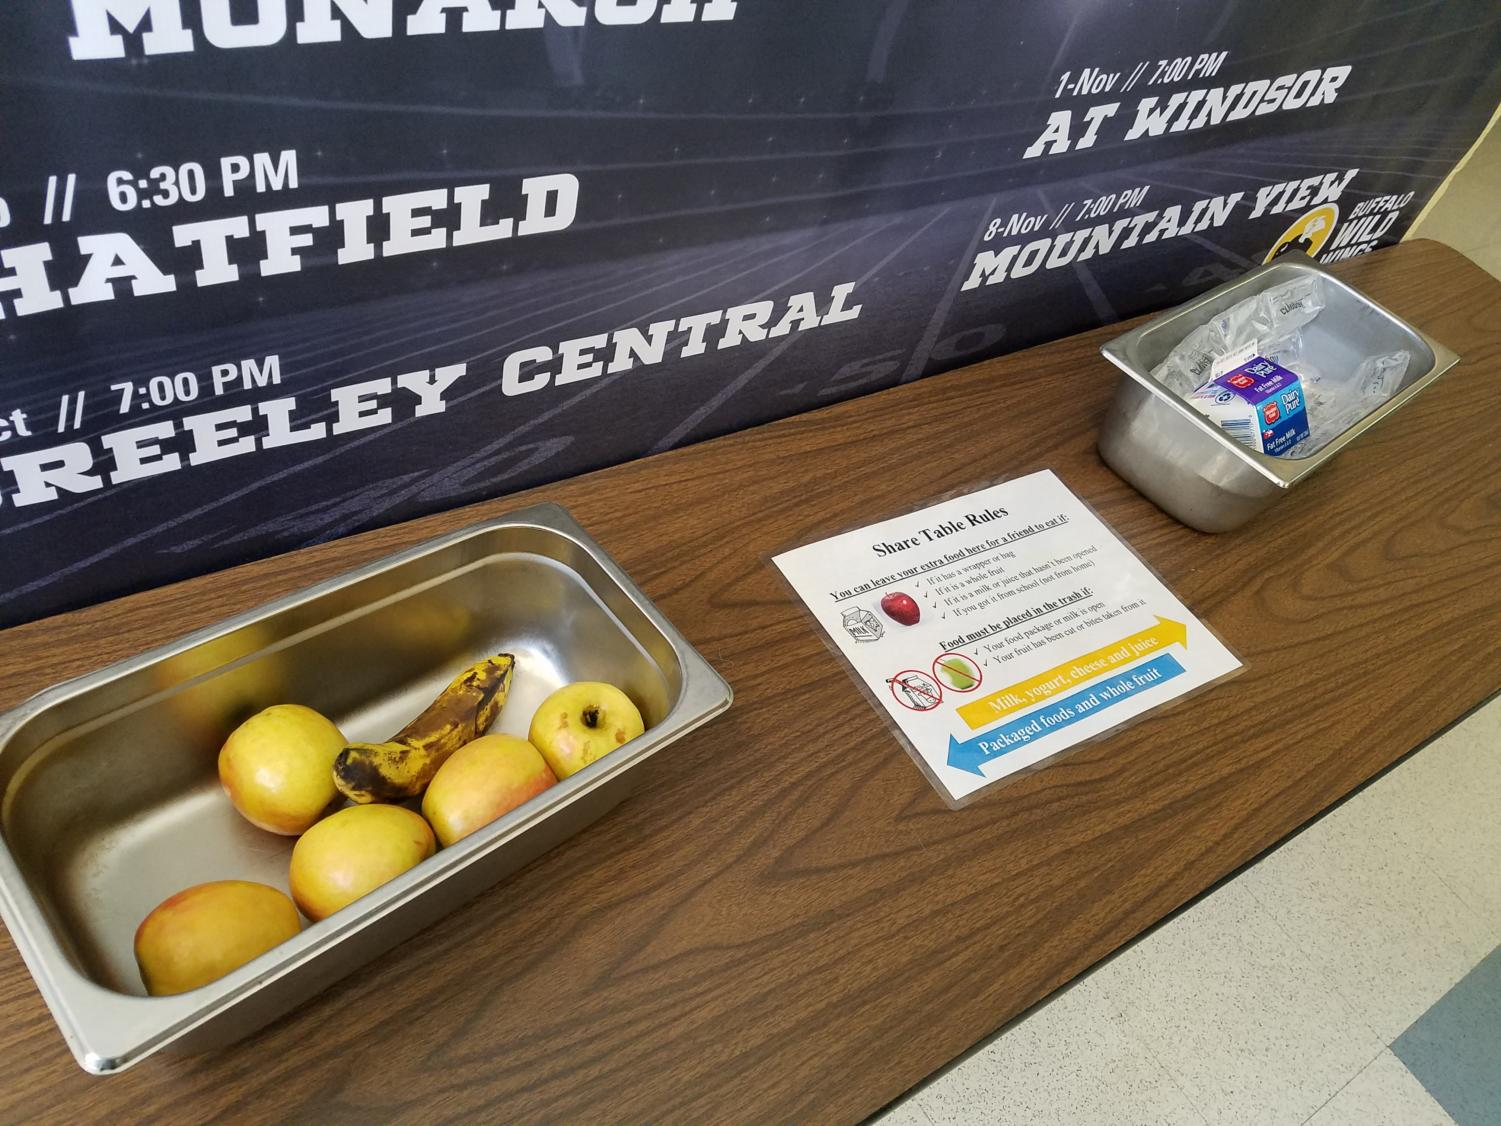 Food sits on the newly created Share Table in the commons area.  The Share Table is a way for West students to avoid wasting food while helping others who may be hungry.